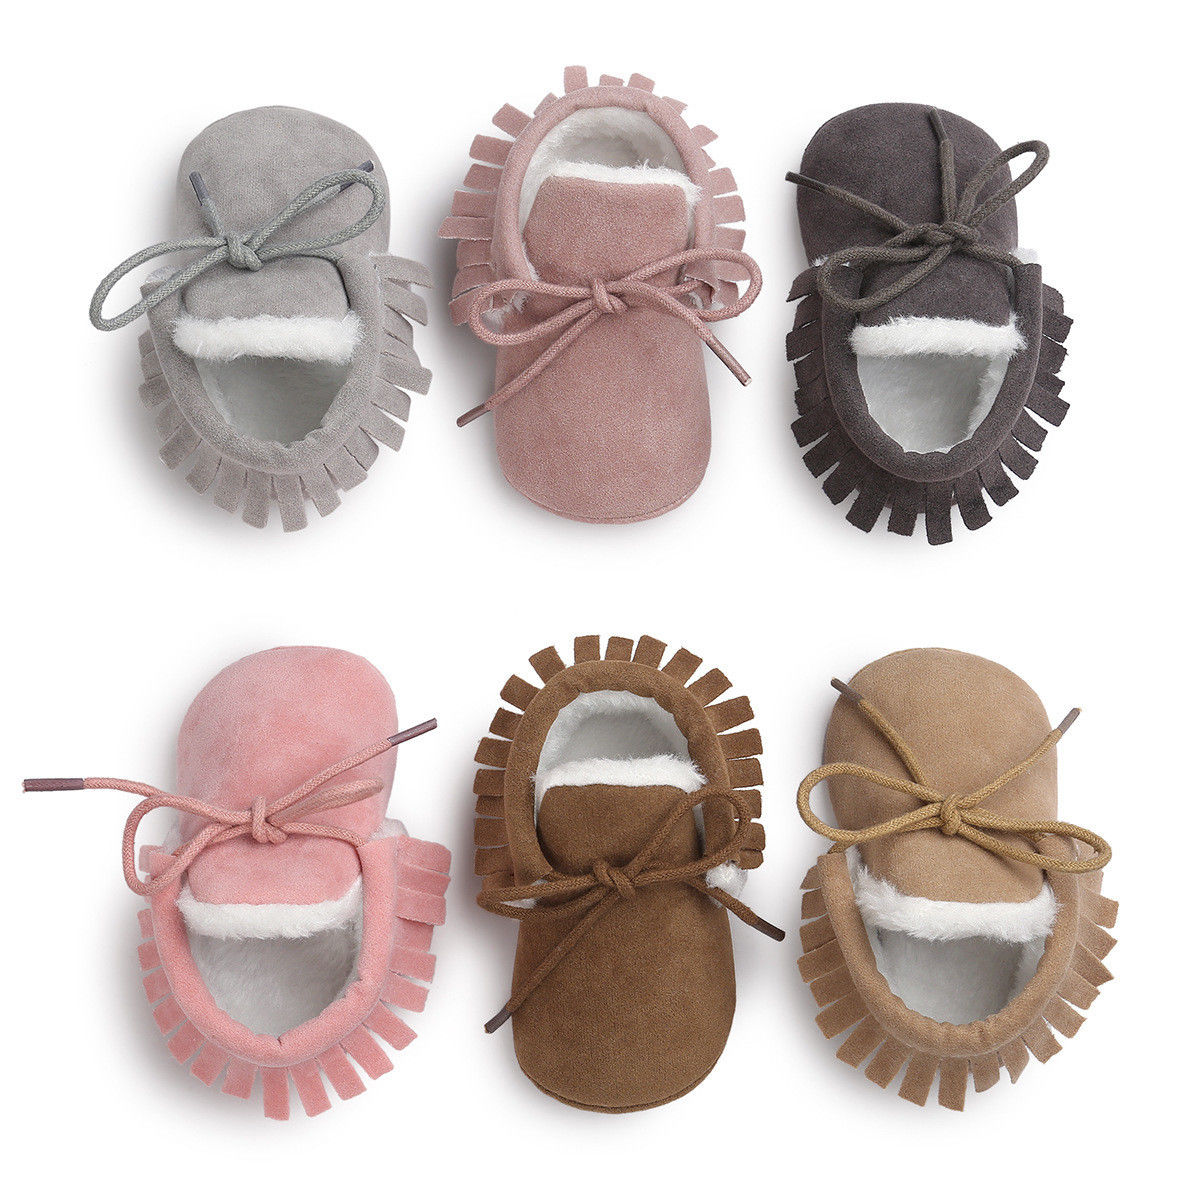 Infant-Toddler-Baby-Boy-Girl-Shoes-Soft-Sole-Sneaker-Crib-Cotton-Inside-Sneaker-Baby-Casual-Shoes-0-18-Months-5